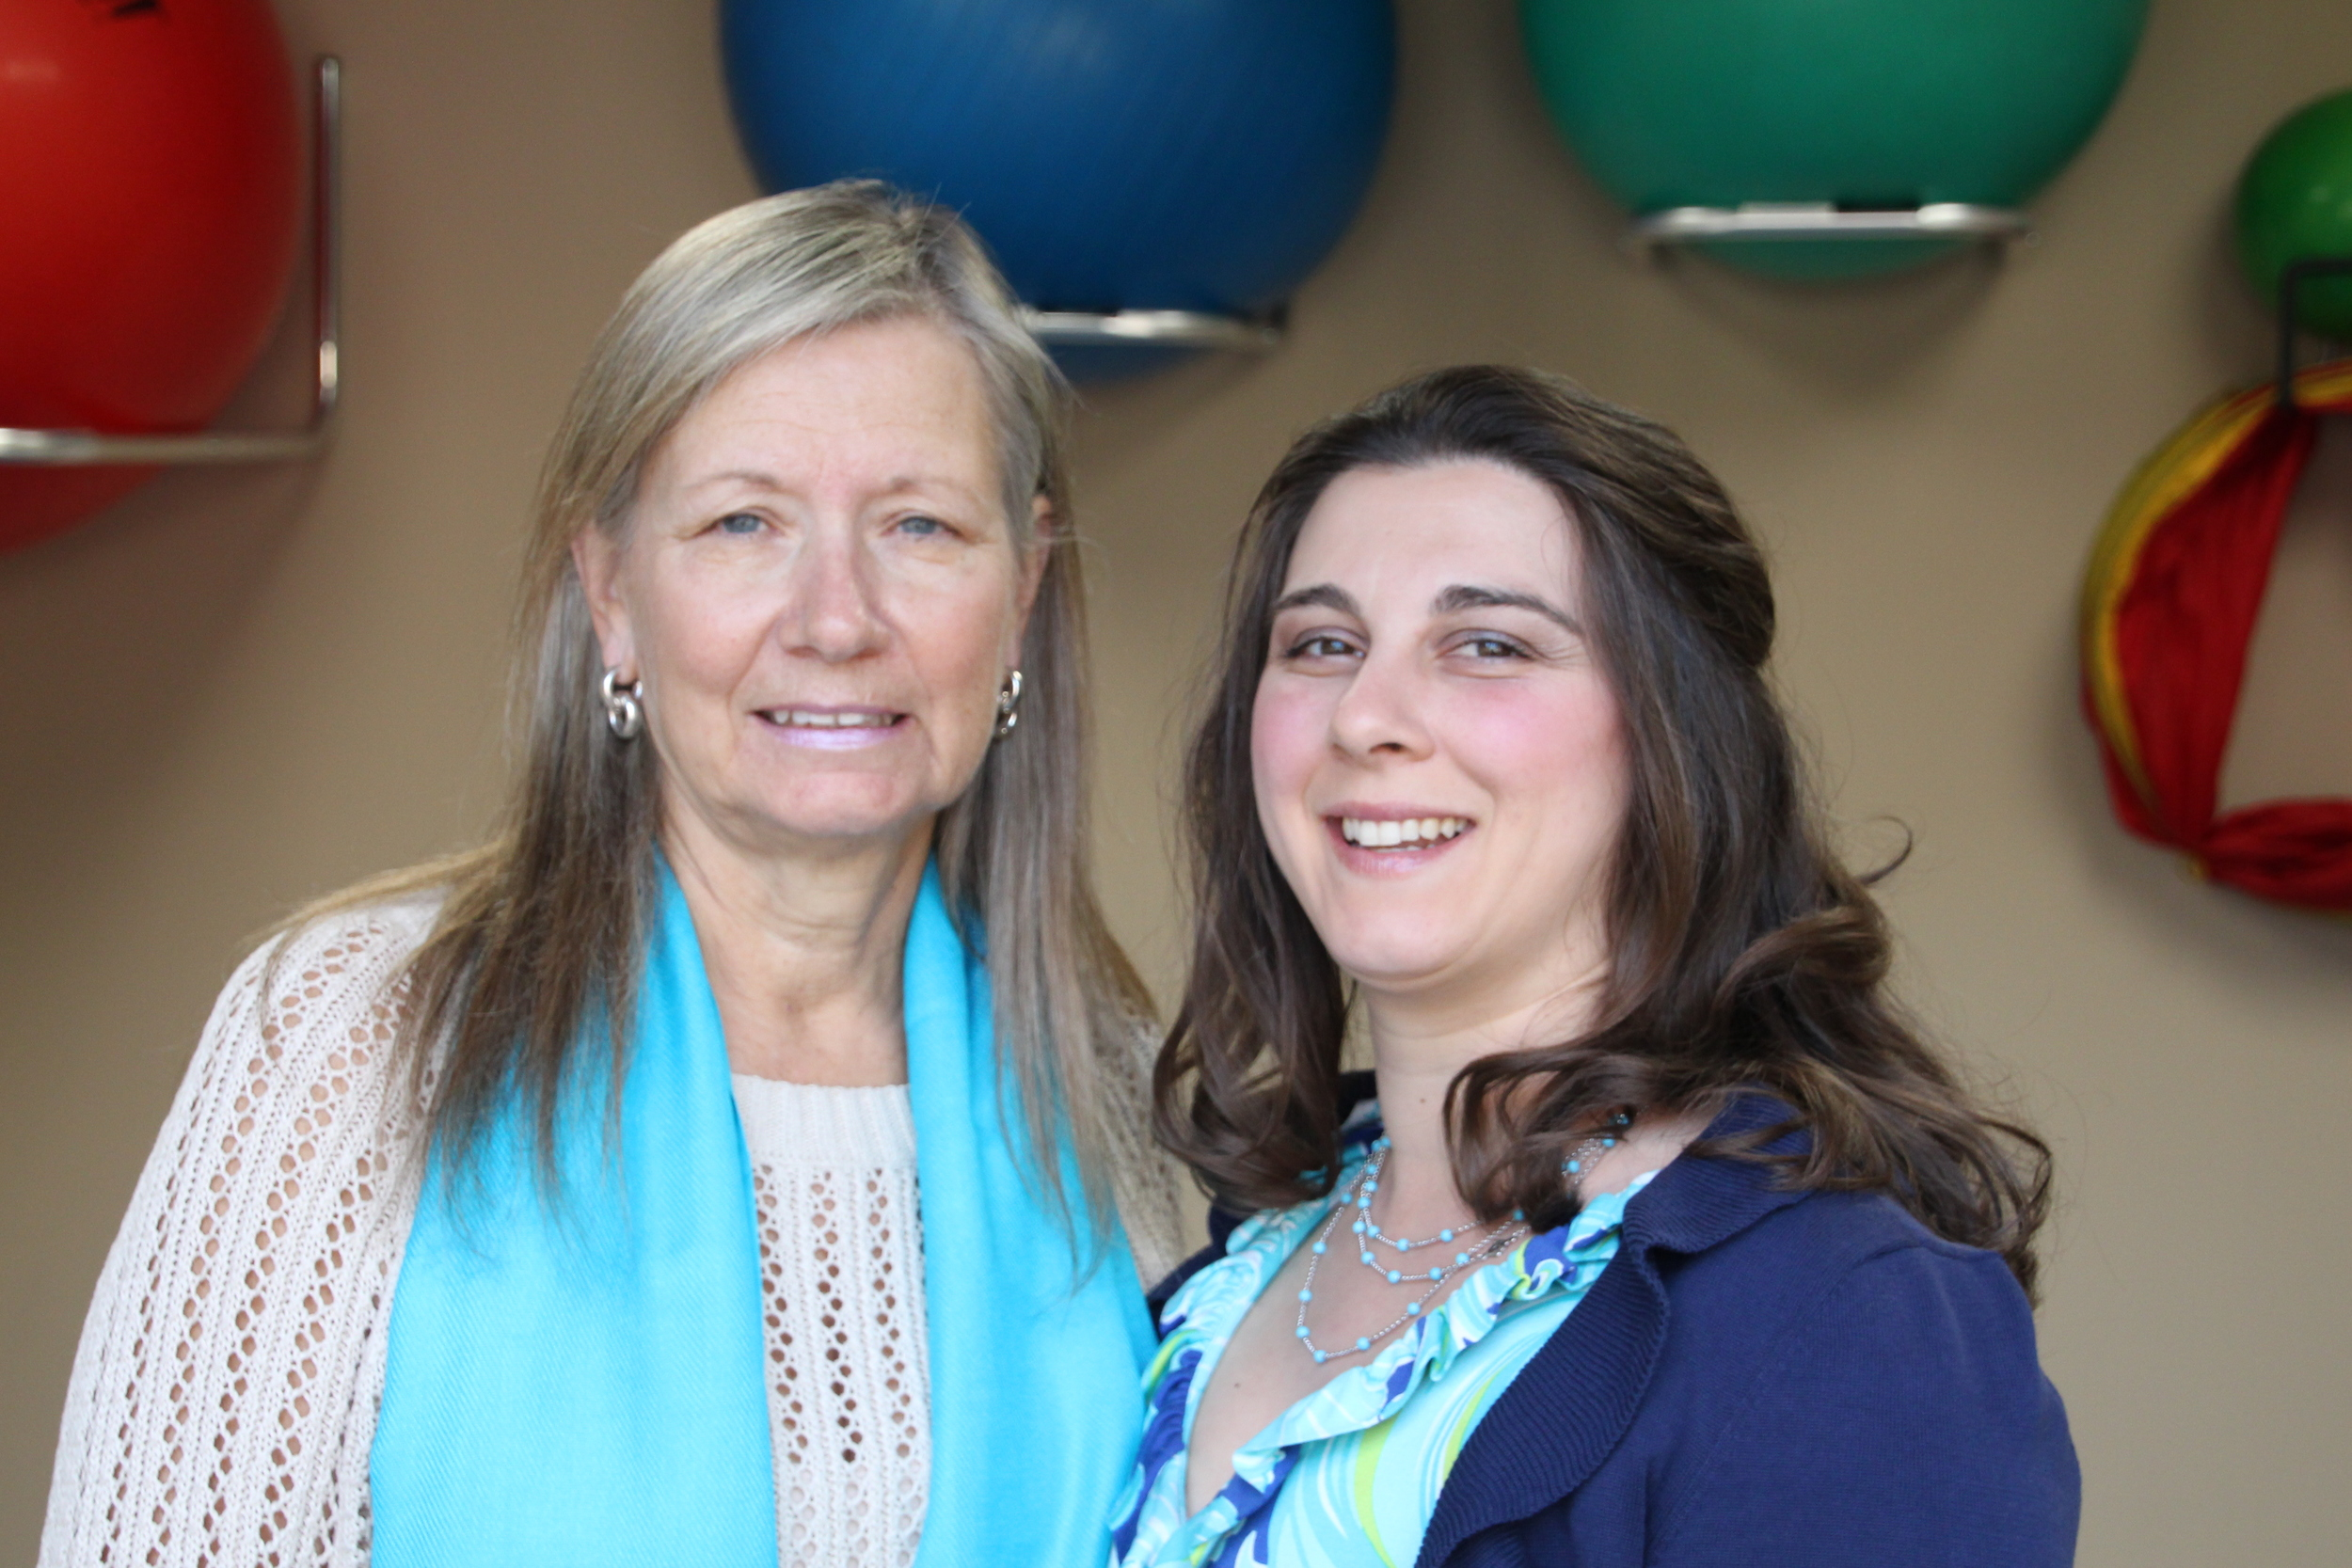 Maybette Waldron and Stefanie Seanor, Owners